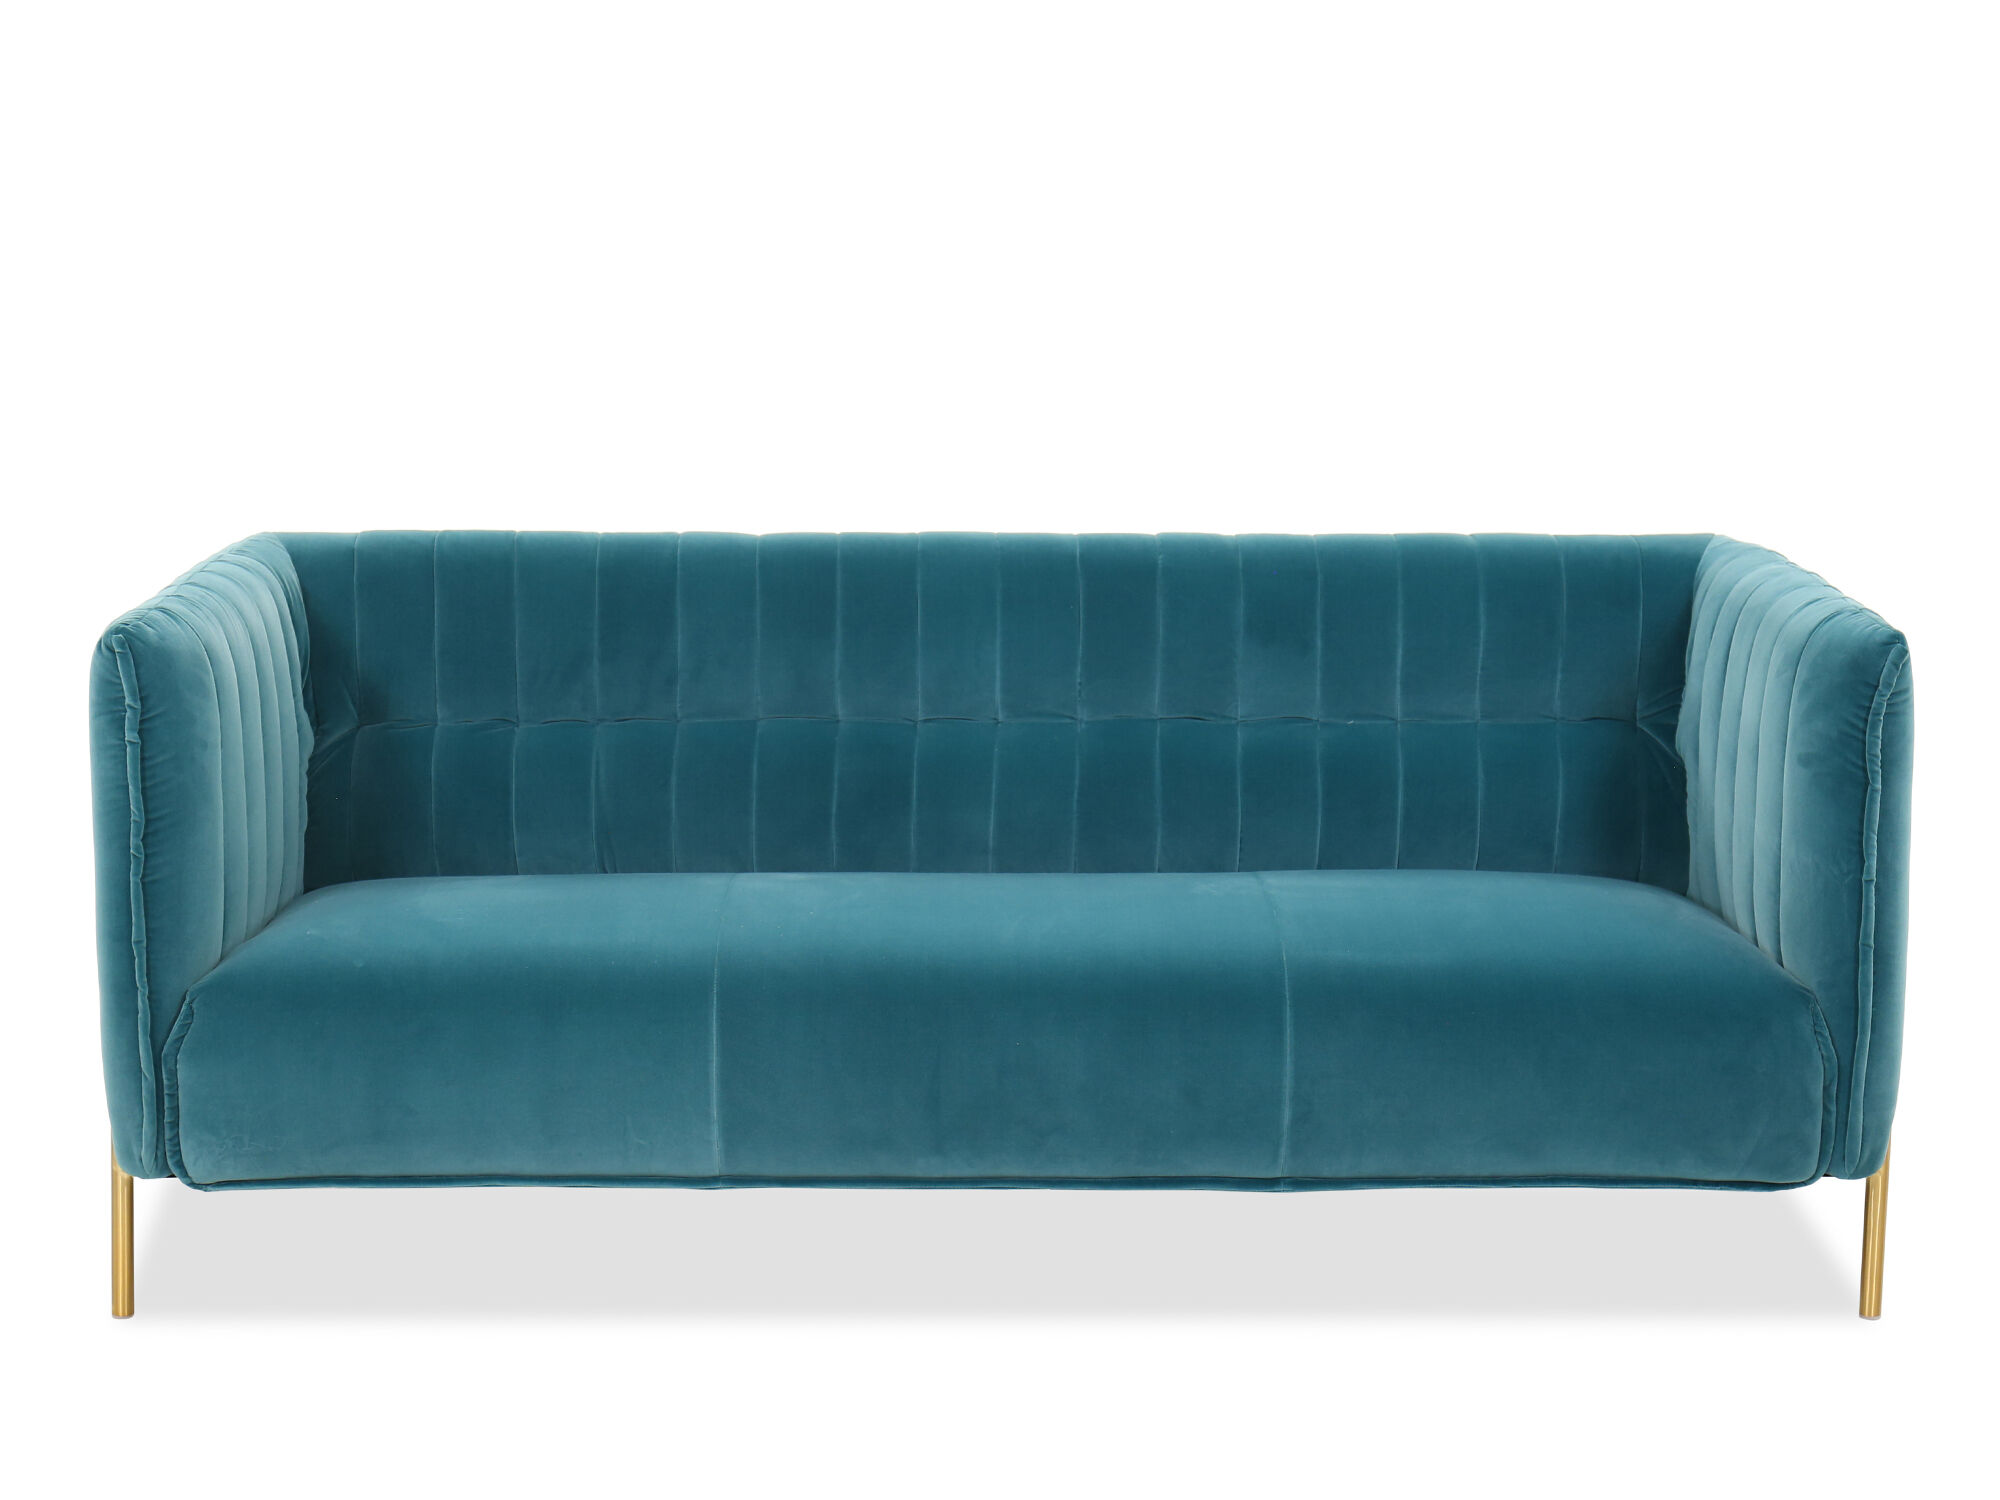 Contemporary Channel Tufted Sofa in Teal | Mathis Brothers Furniture